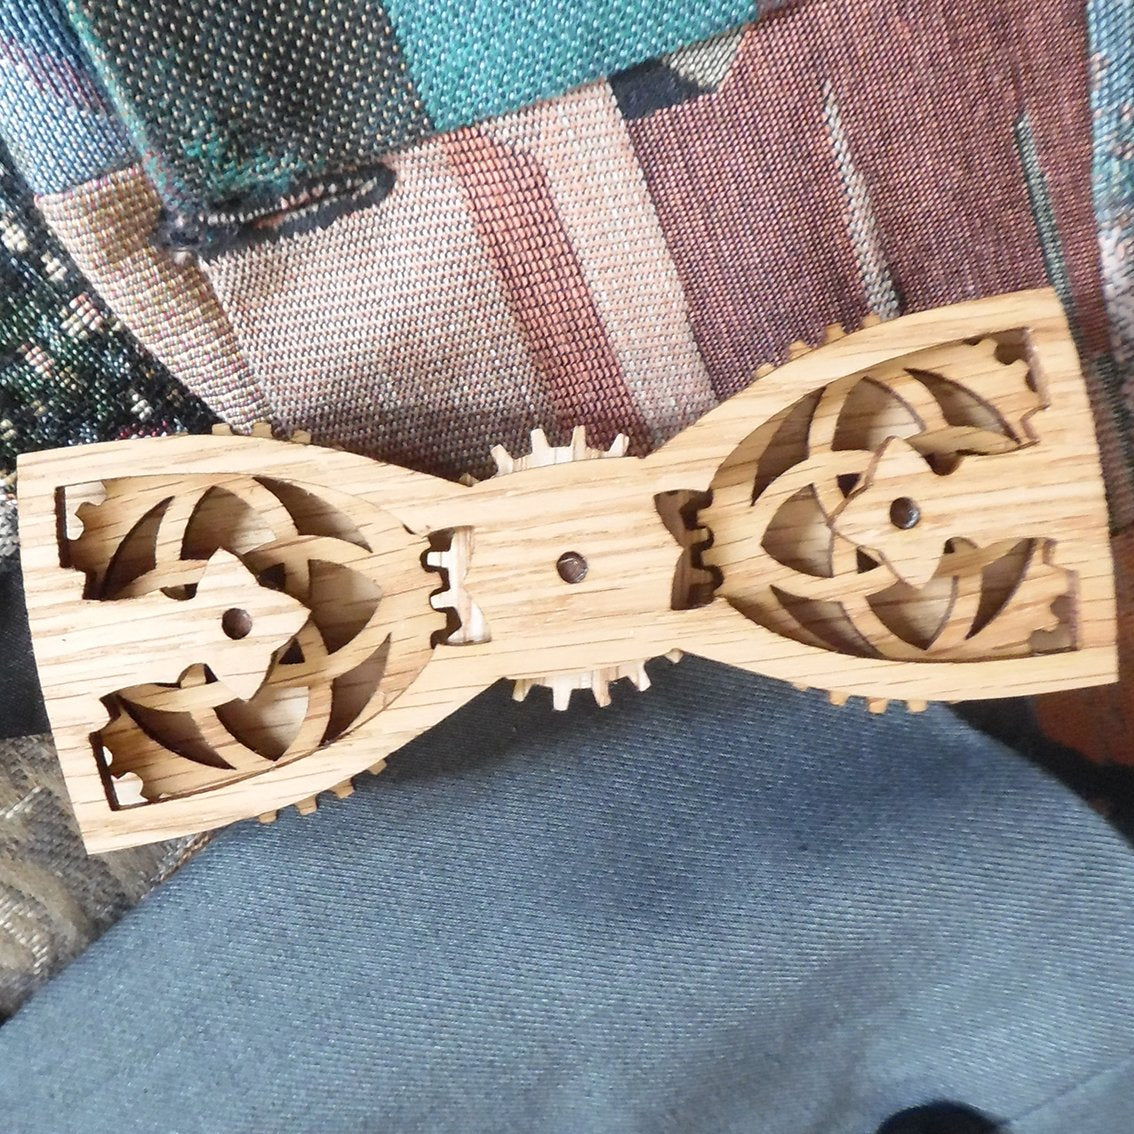 R.R. Wells Jr. Moving Wood Gear Tie